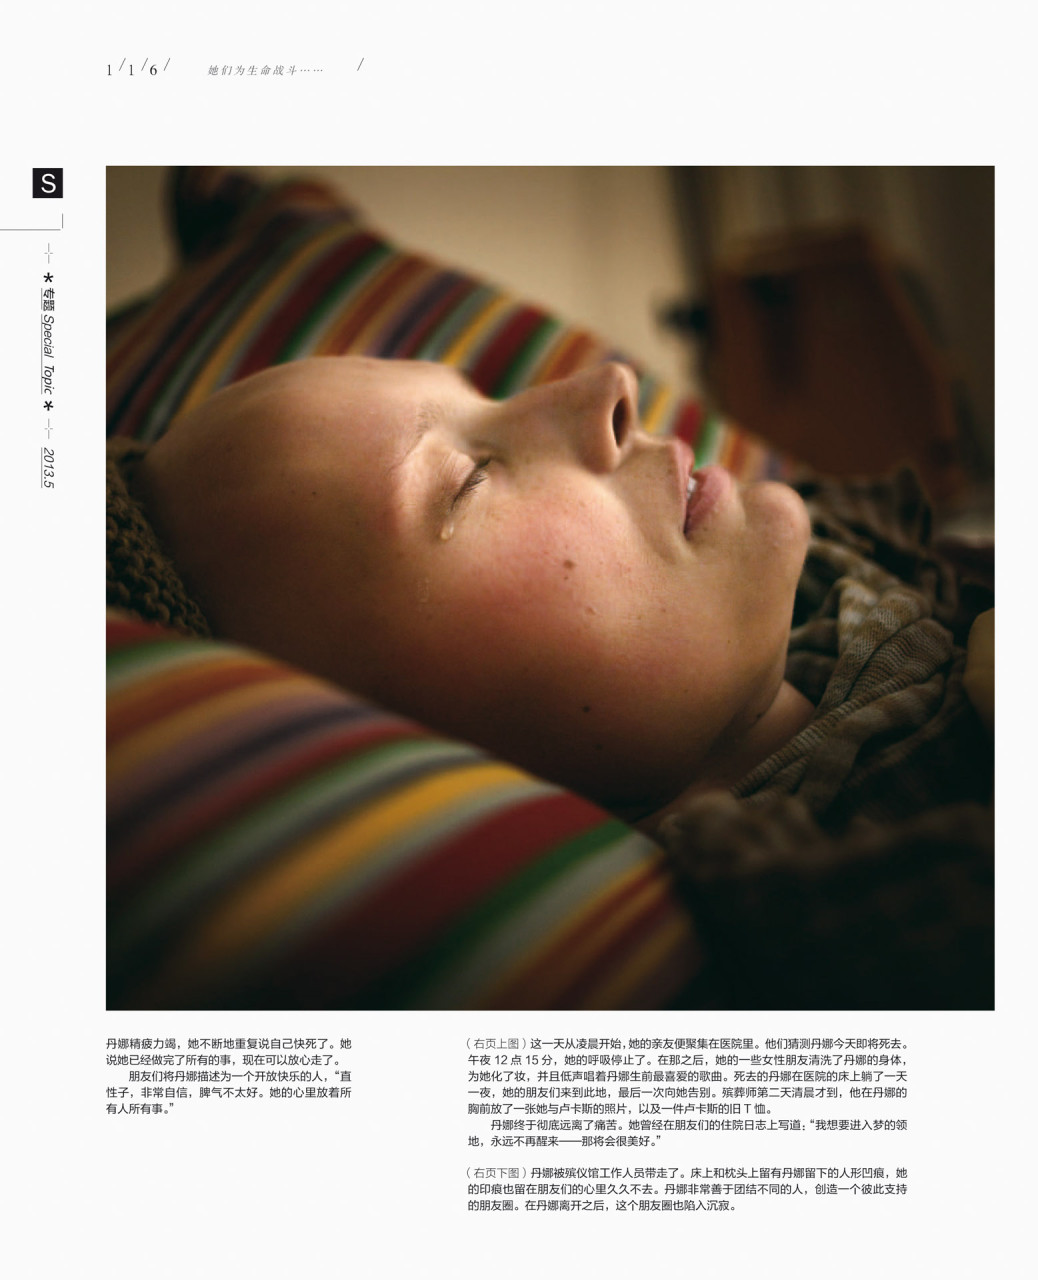 Lens magazine of China